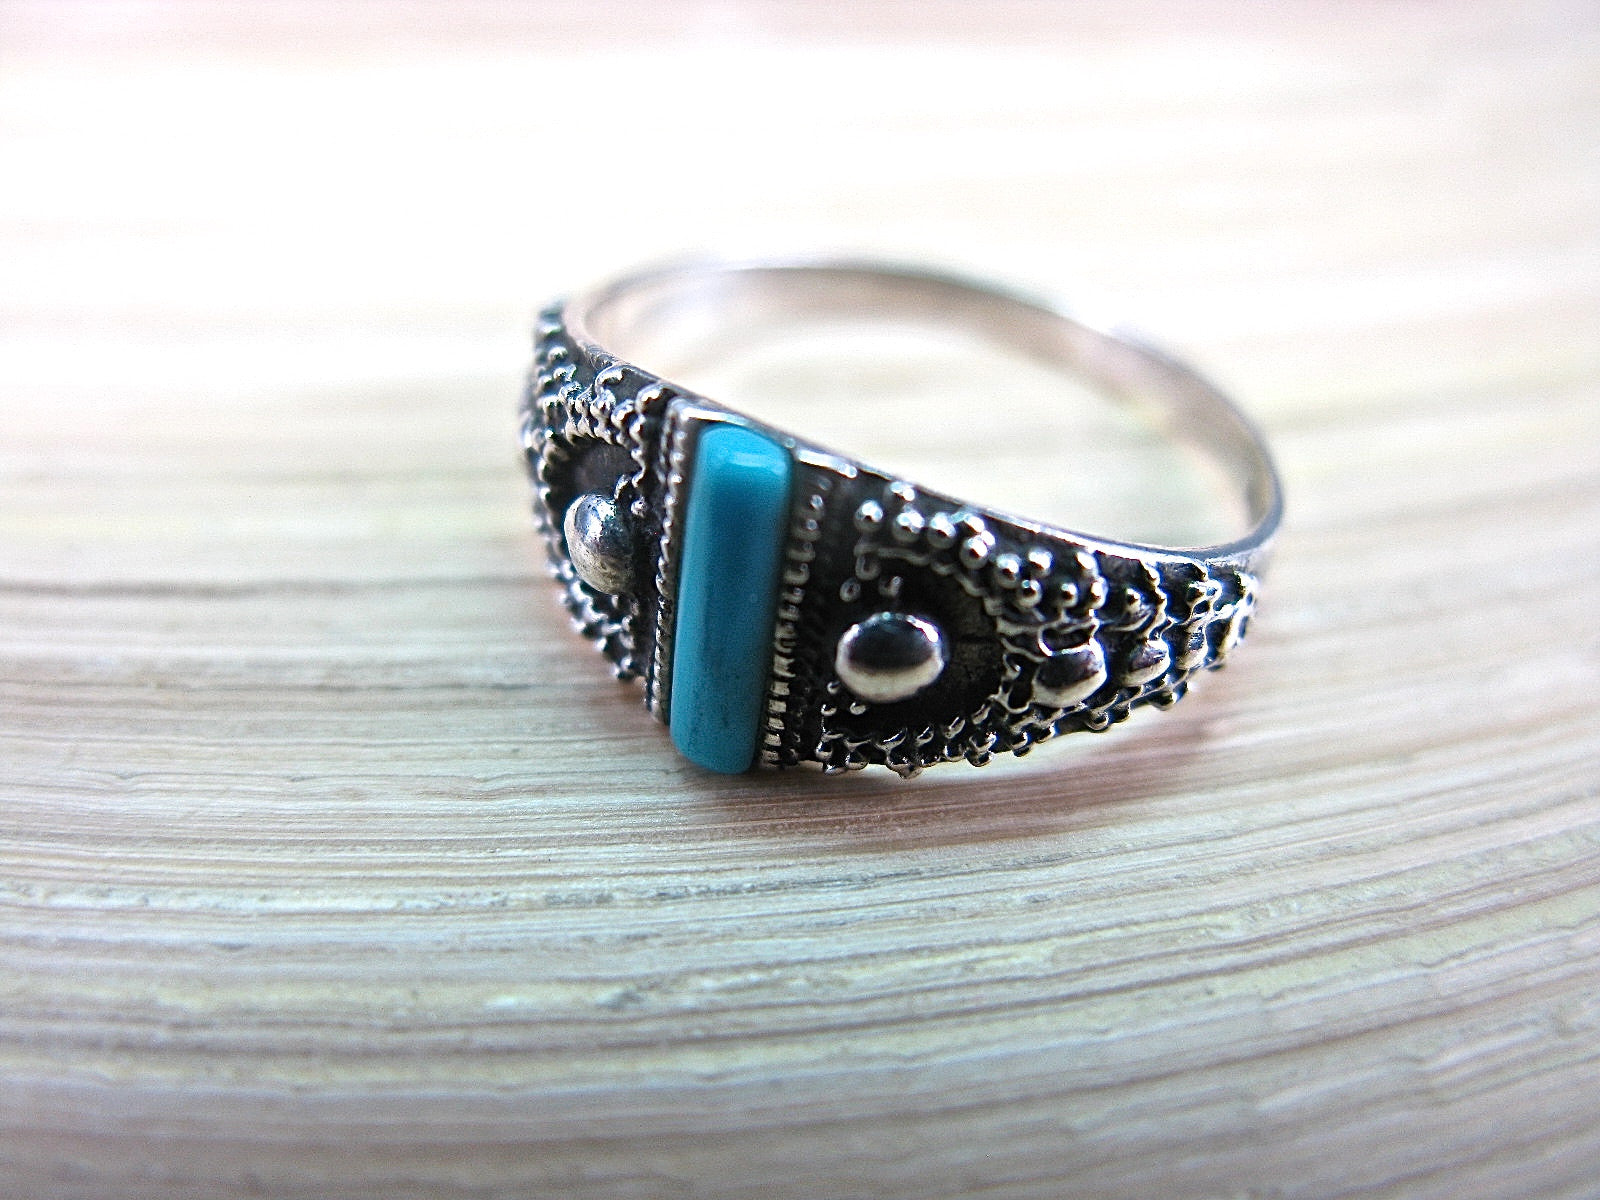 Turquoise Bar Ring in 925 Sterling Silver Ring Faith Owl - Faith Owl